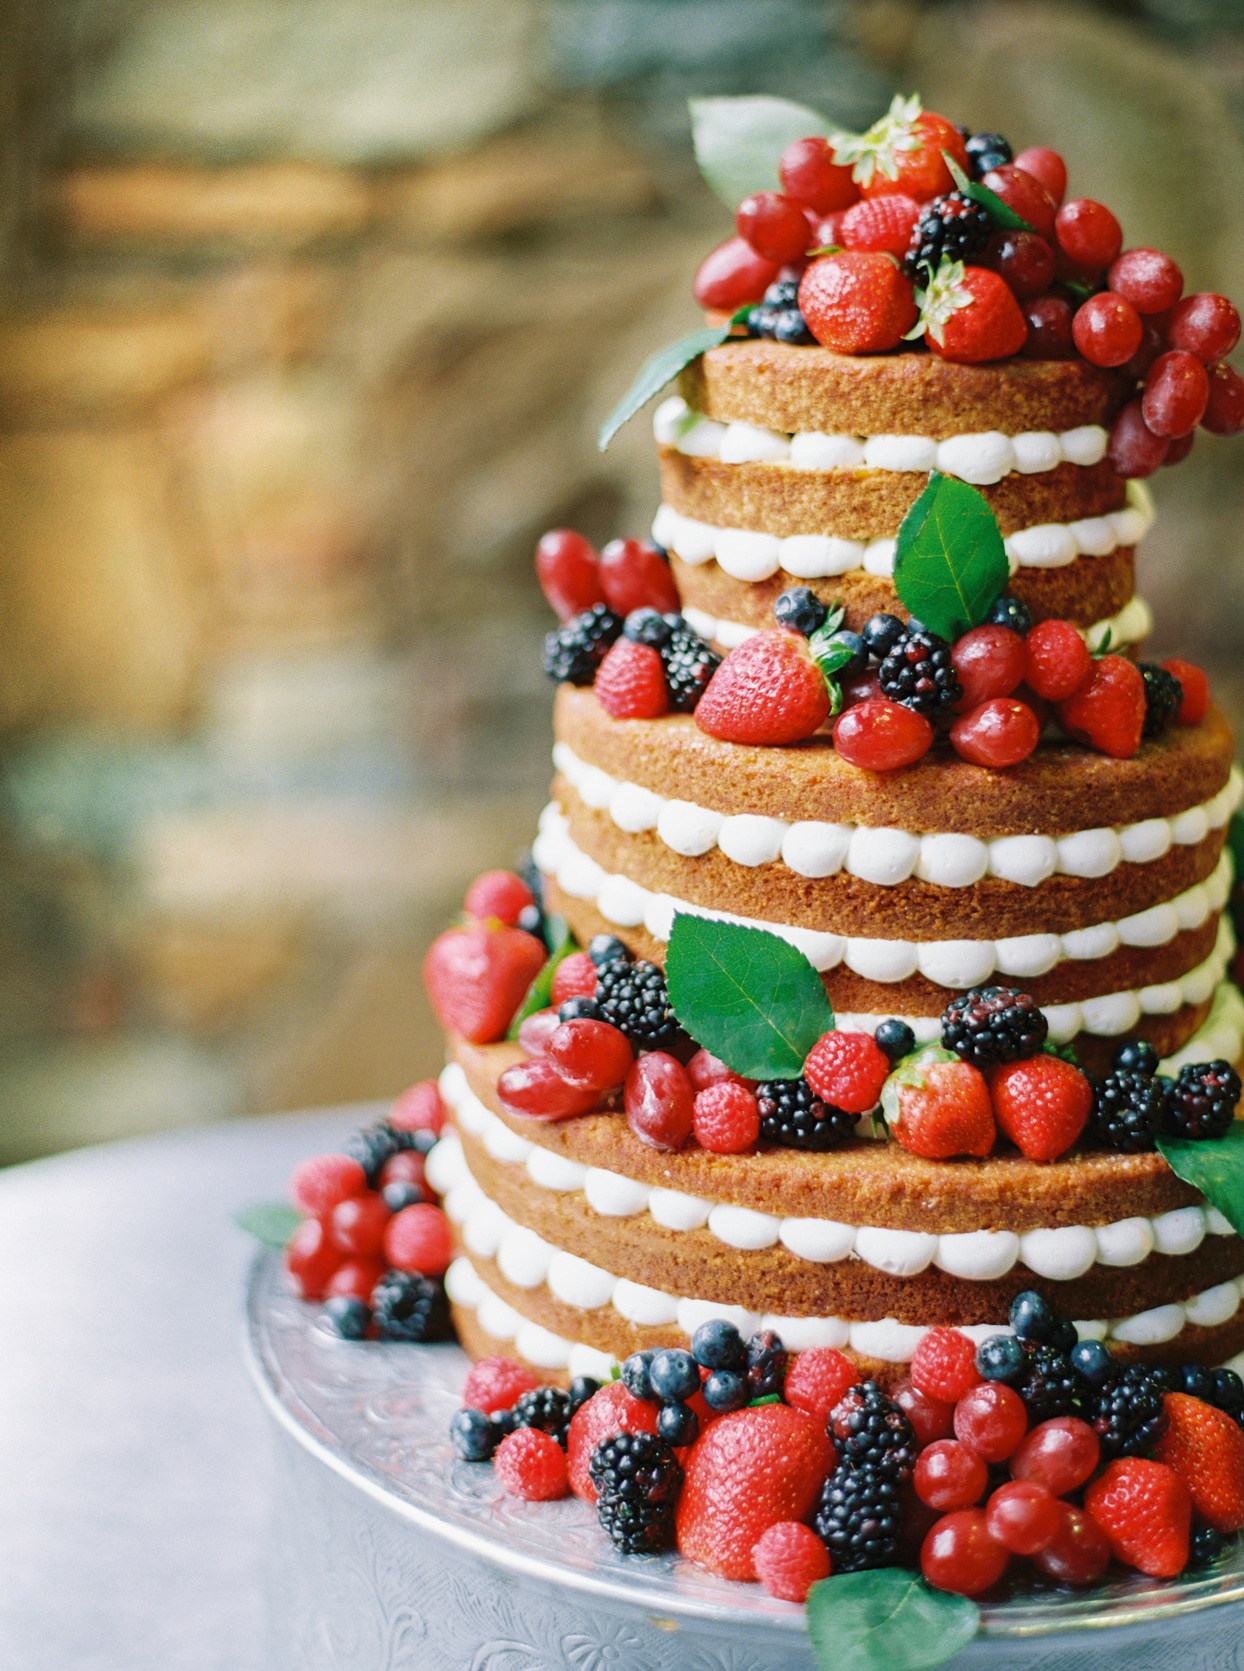 A millefoglie dessert with puff pastry, whipped cream, and fresh berries